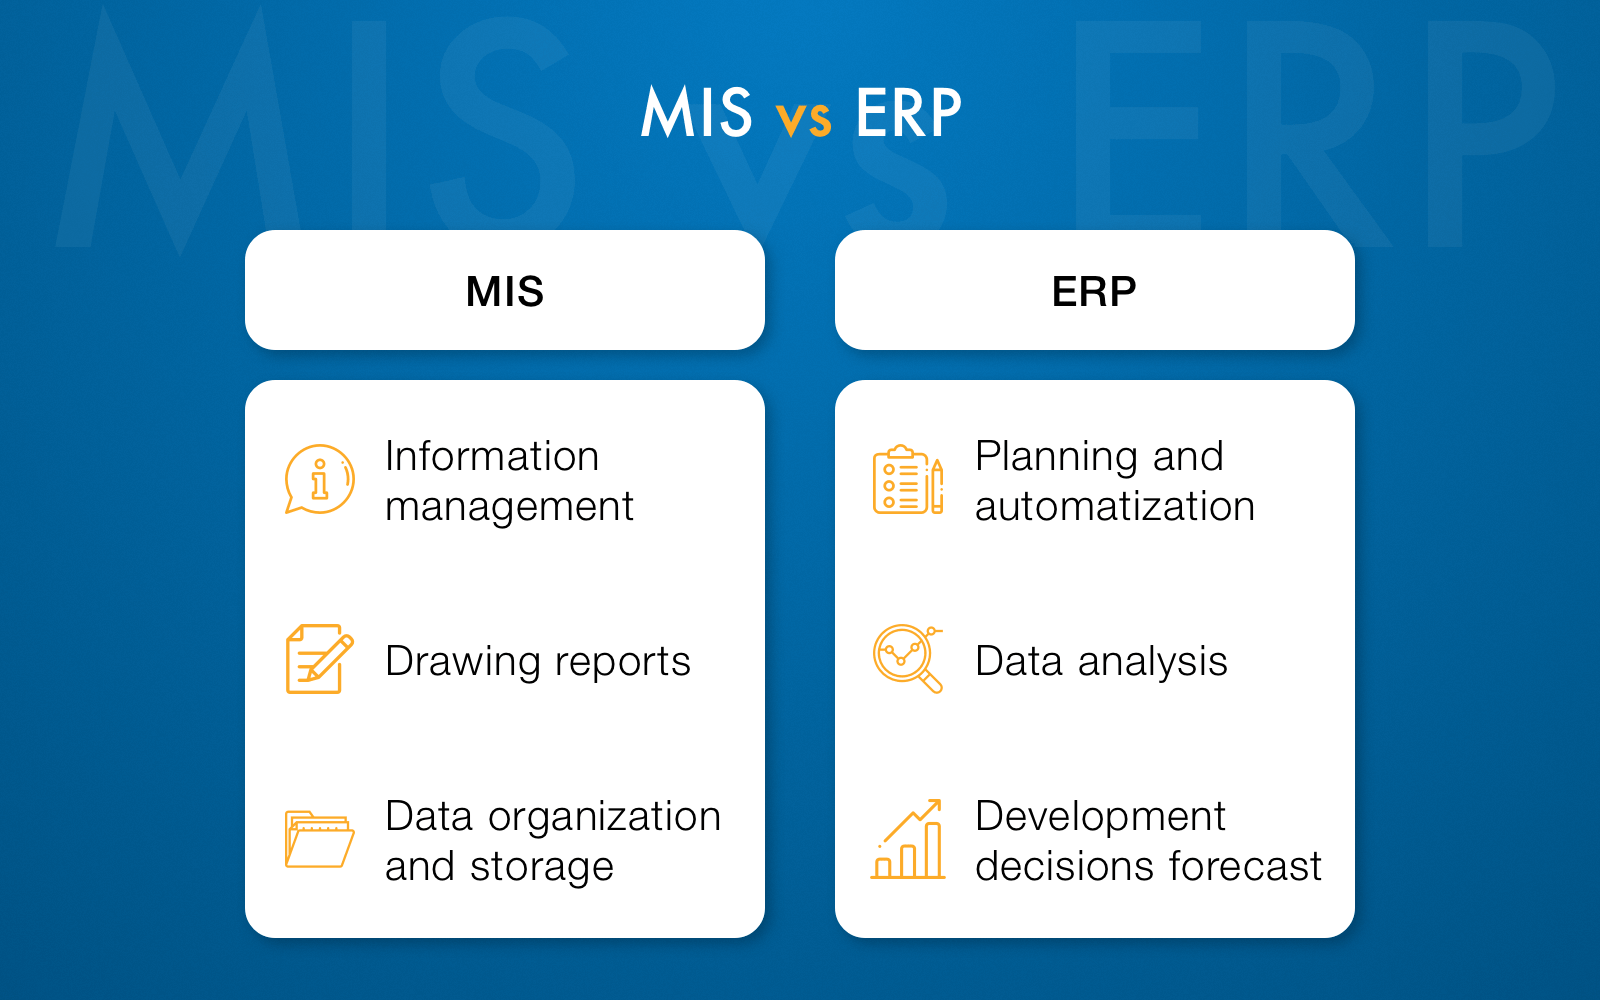 What is the difference between ERP and MIS? - Quora